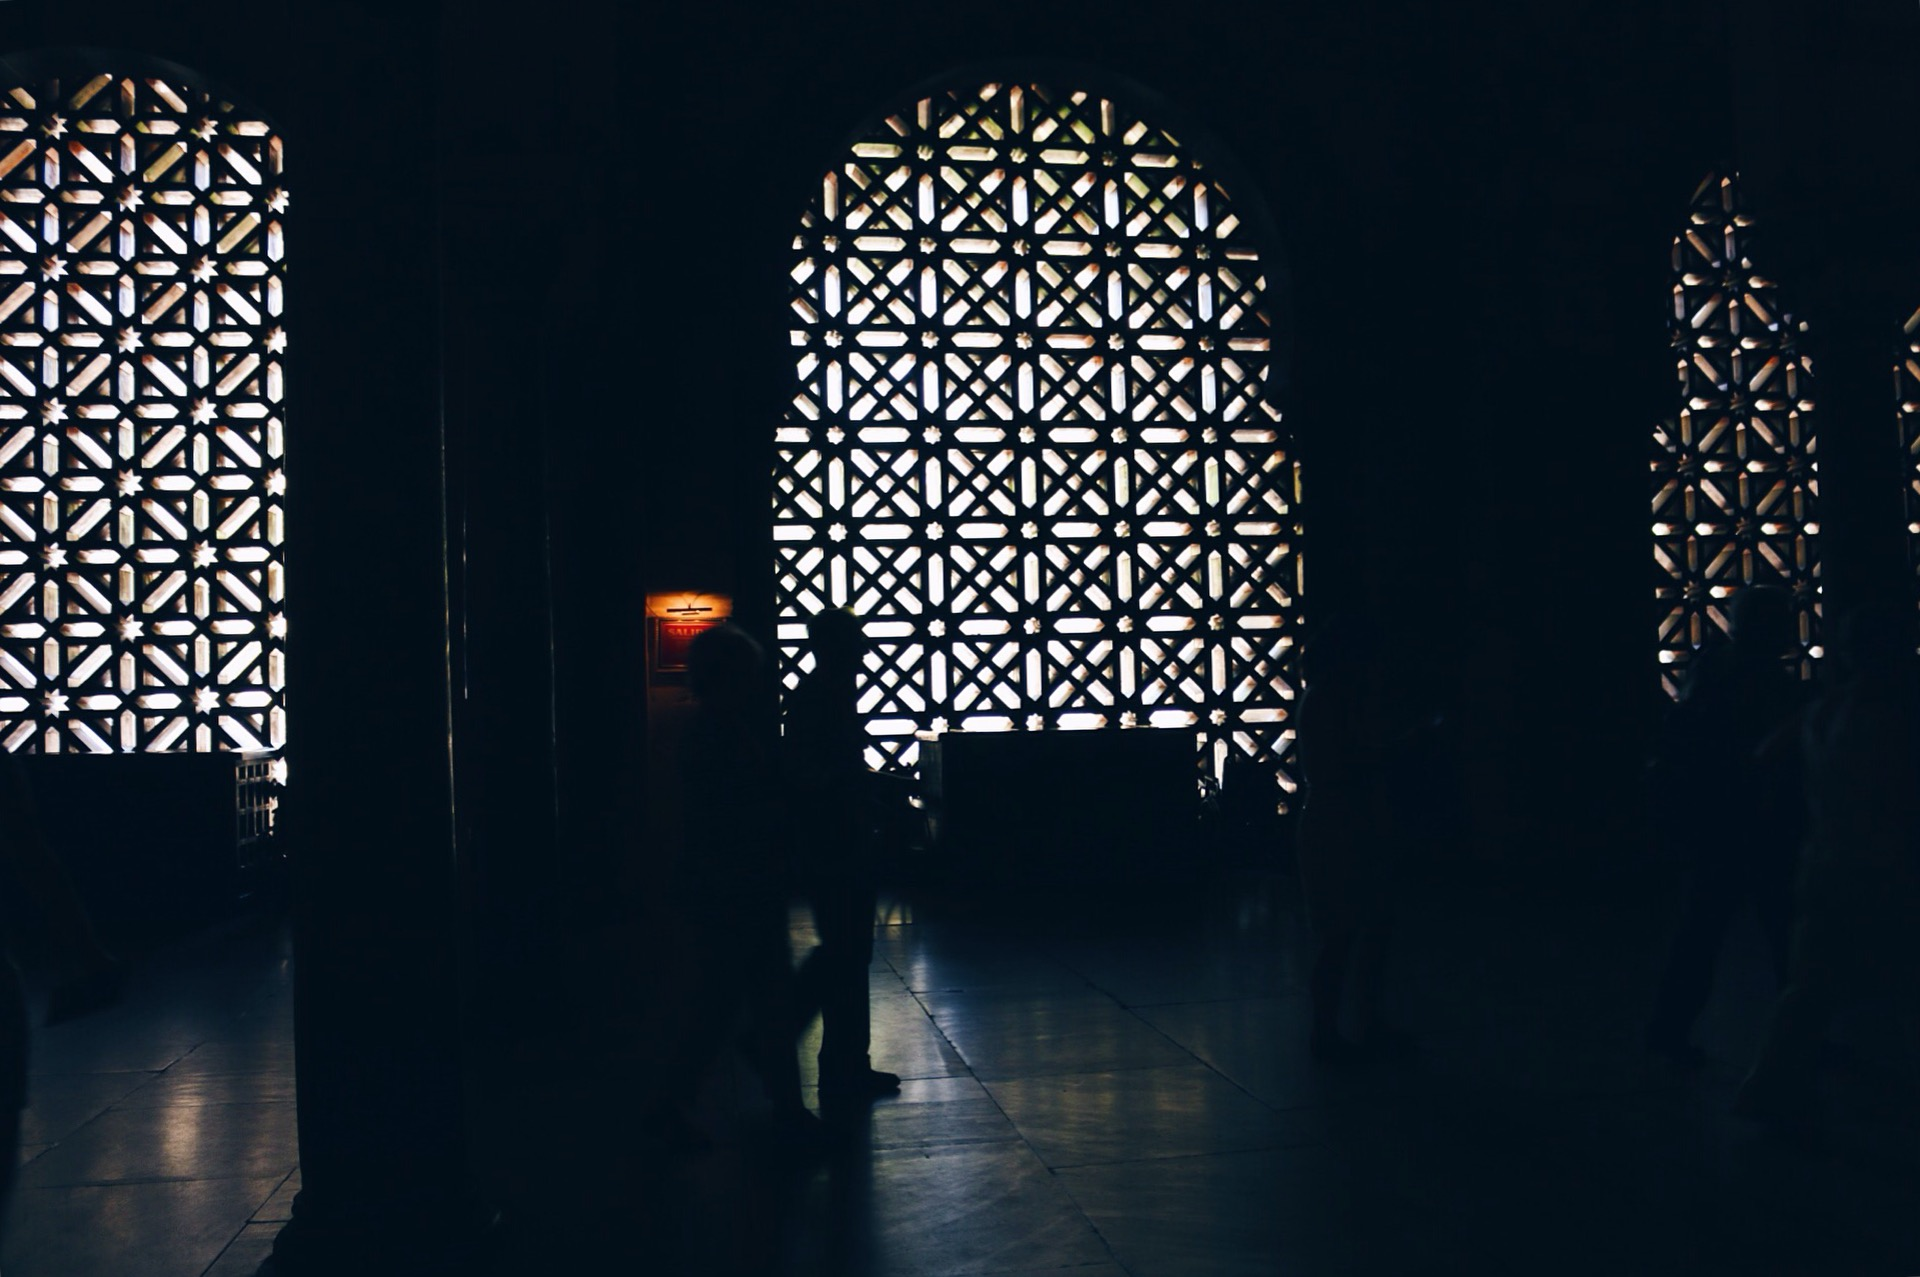 ENTRANCE TO THE MOSQUE-CATHEDRAL OF CORDOBA